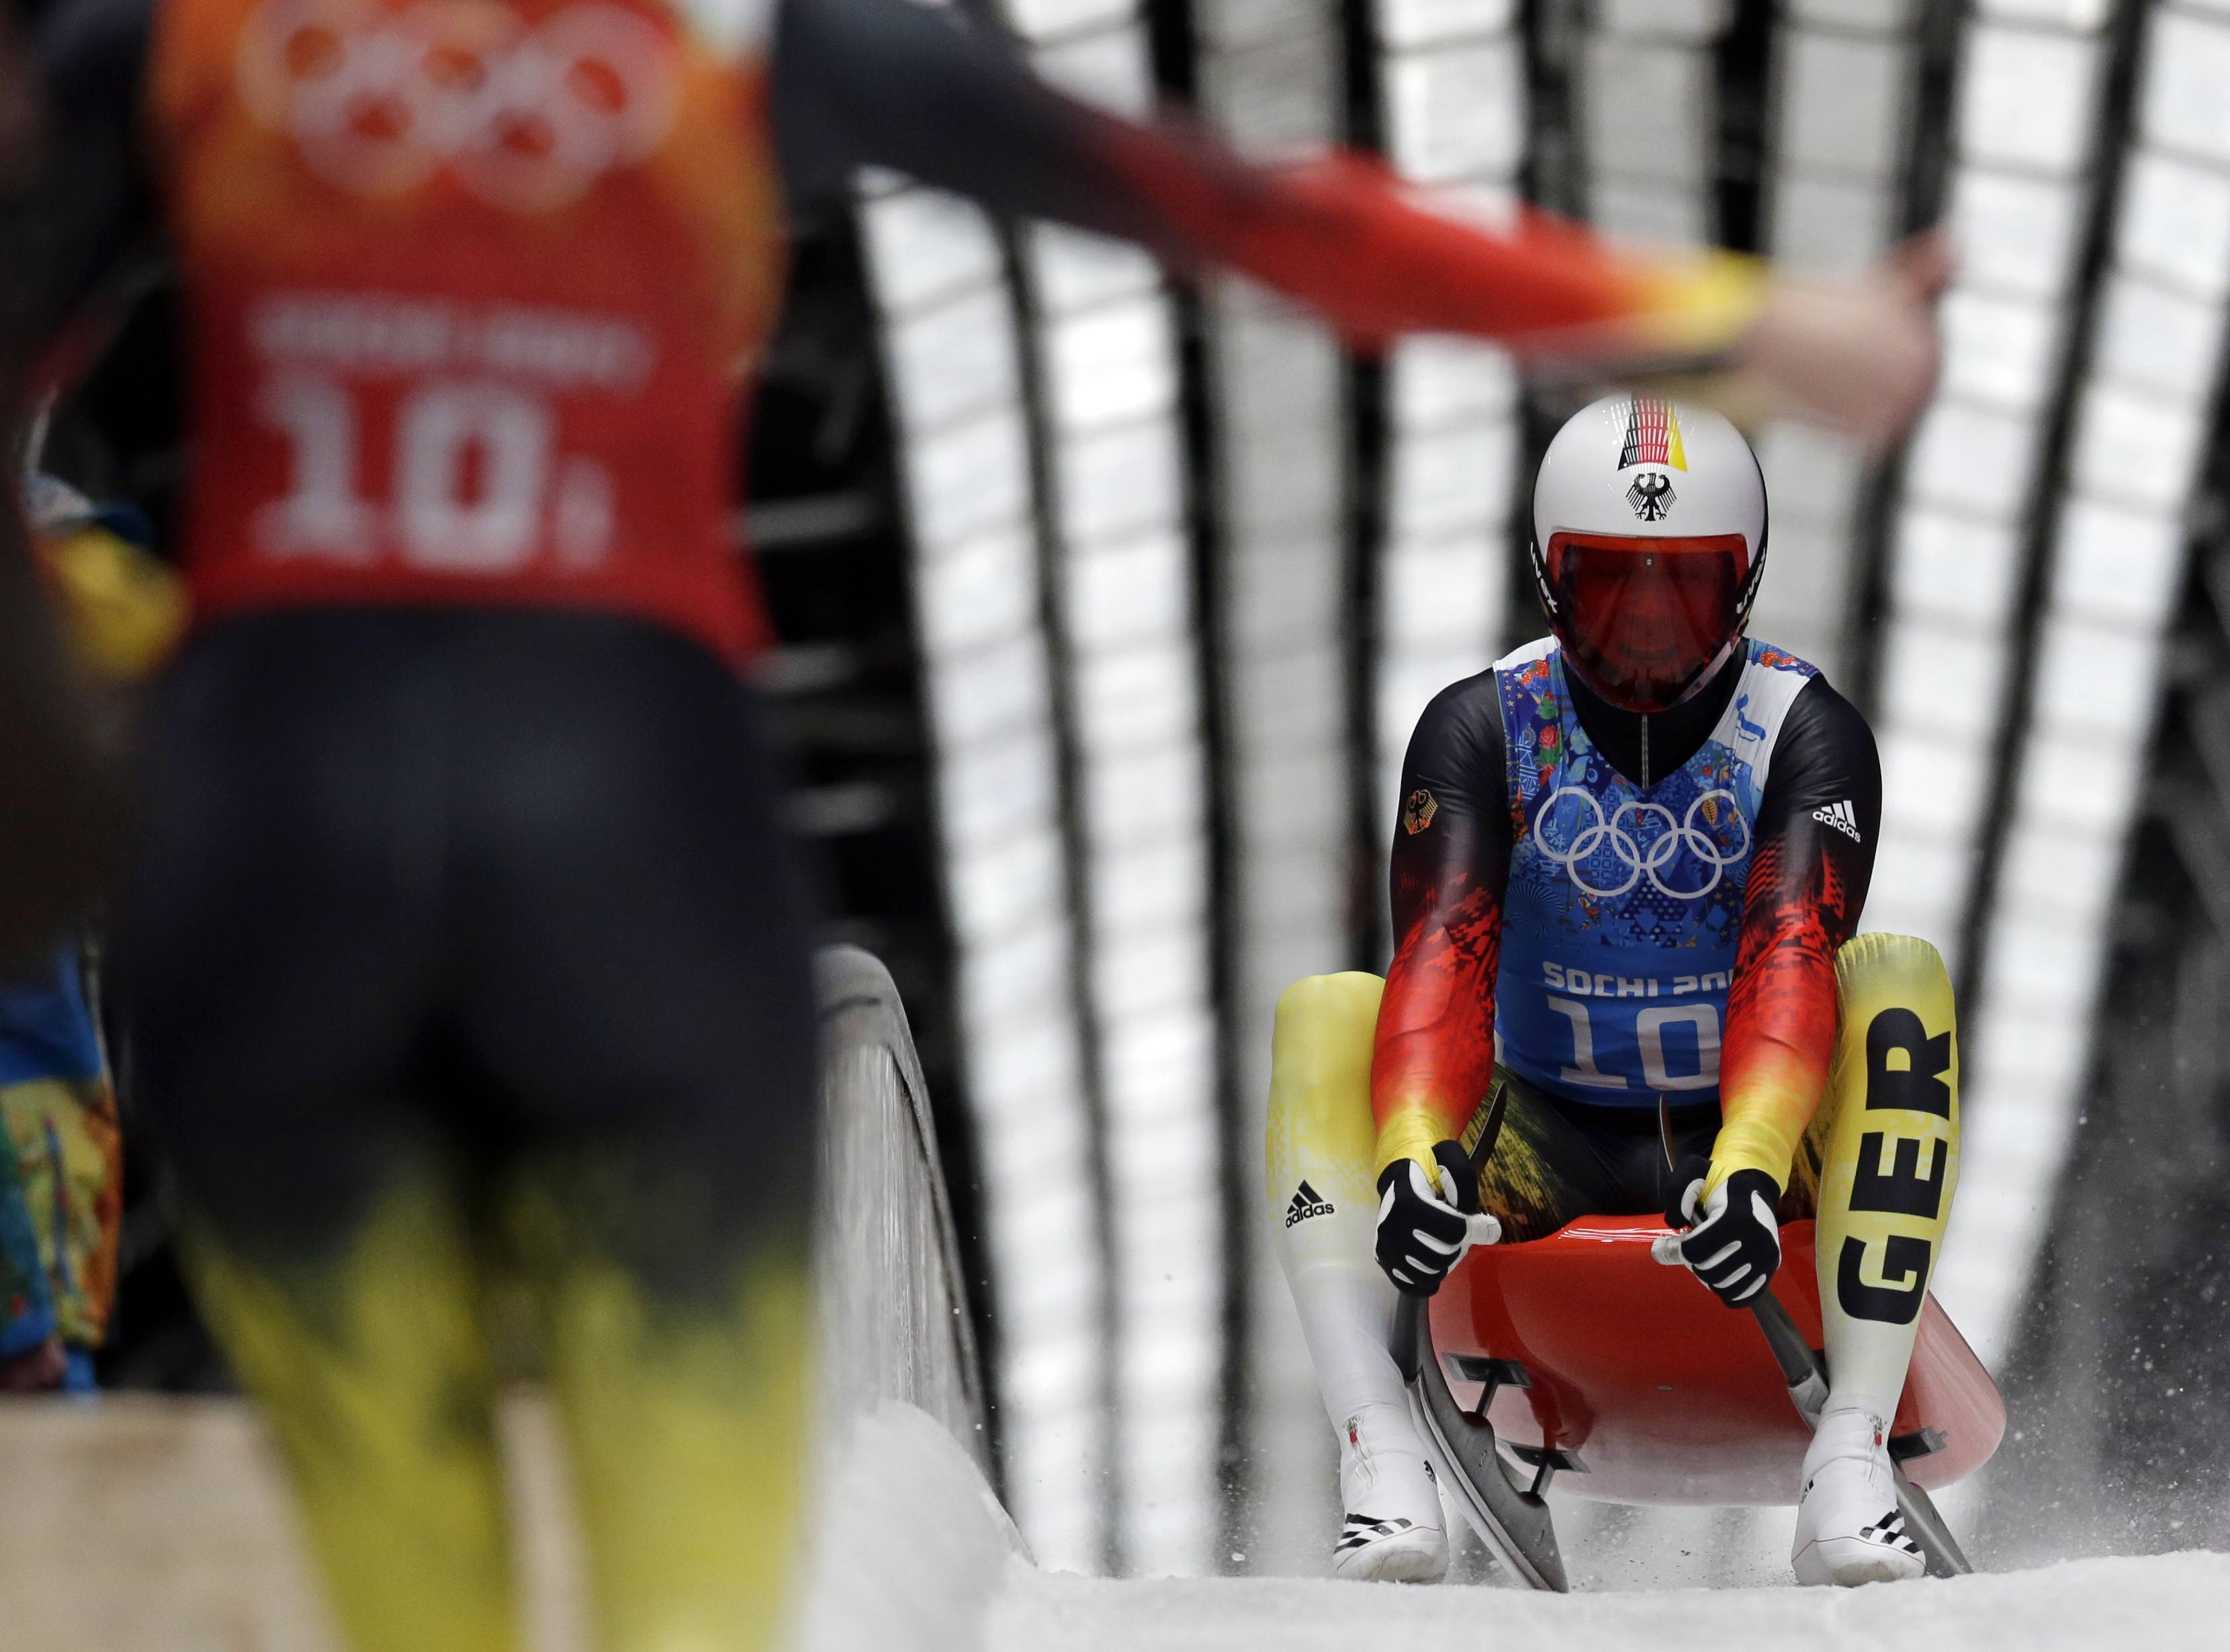 Germany's Felix Loch is greeted in the finisg area by teammate Natalie Geisenberger during the luge team relay competition.